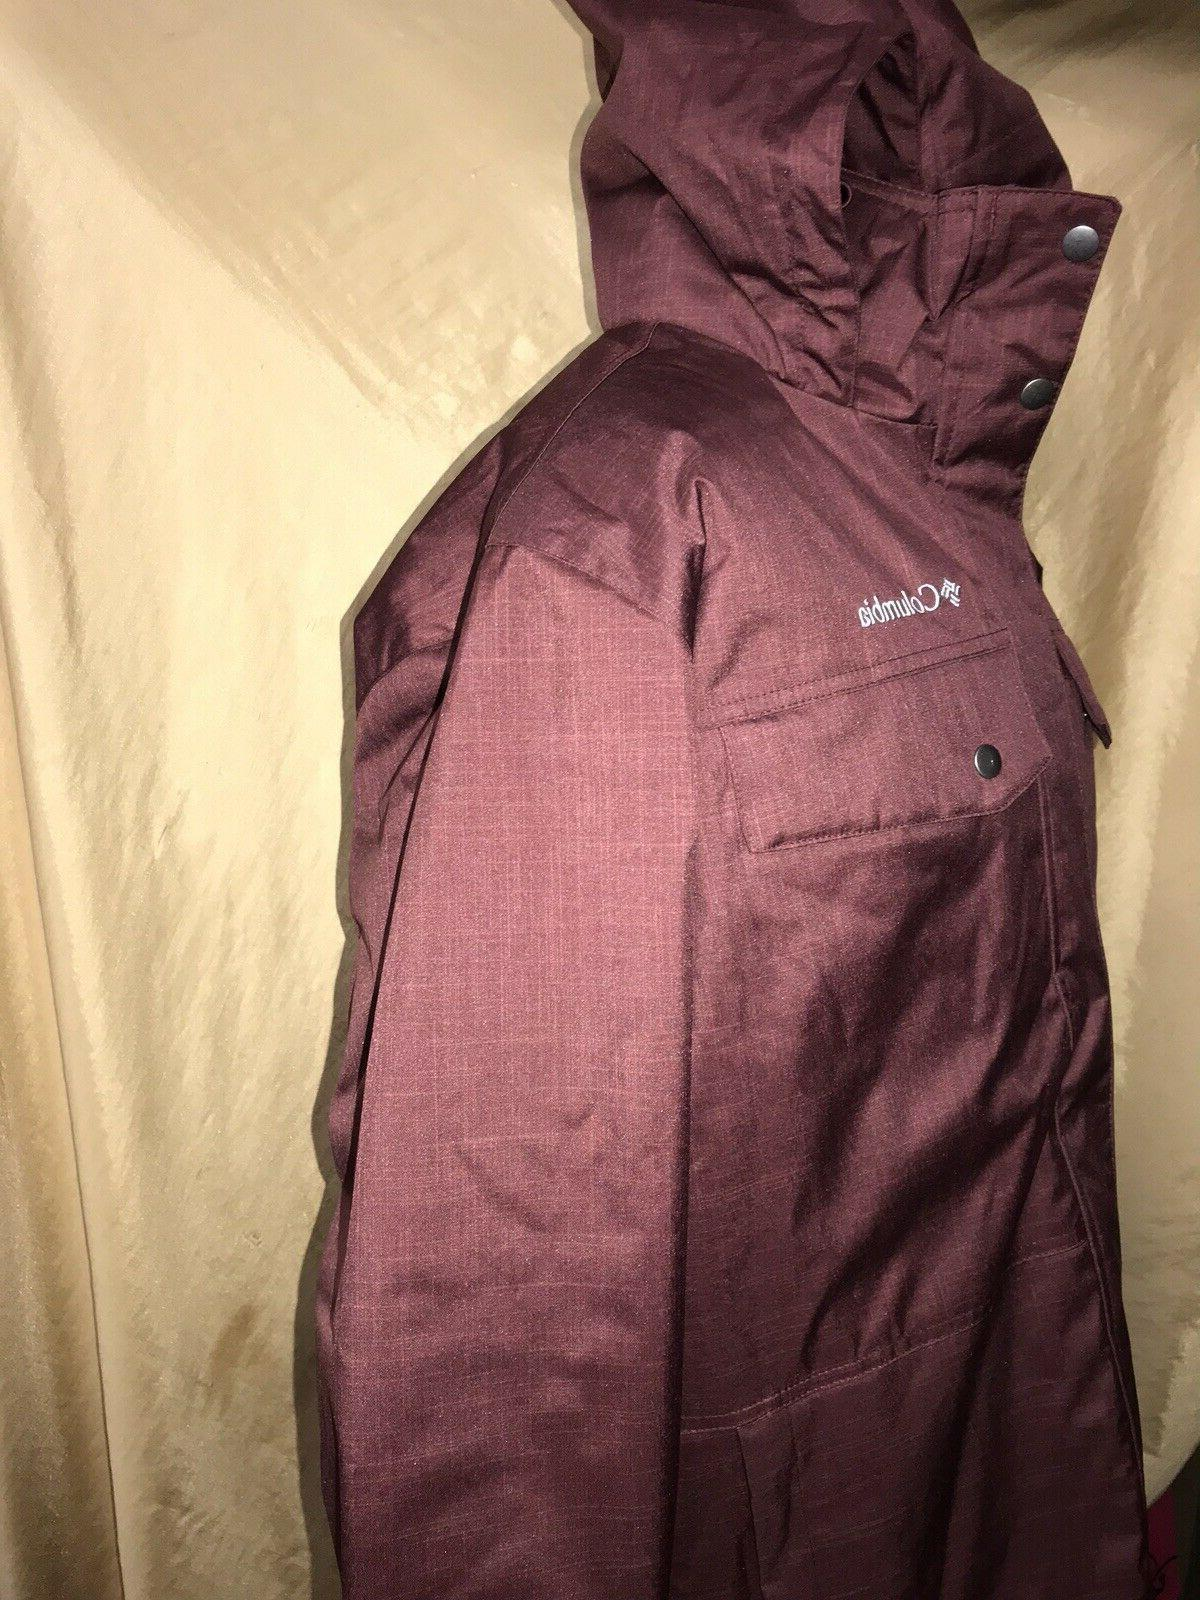 NWT Mens Thermal Hooded